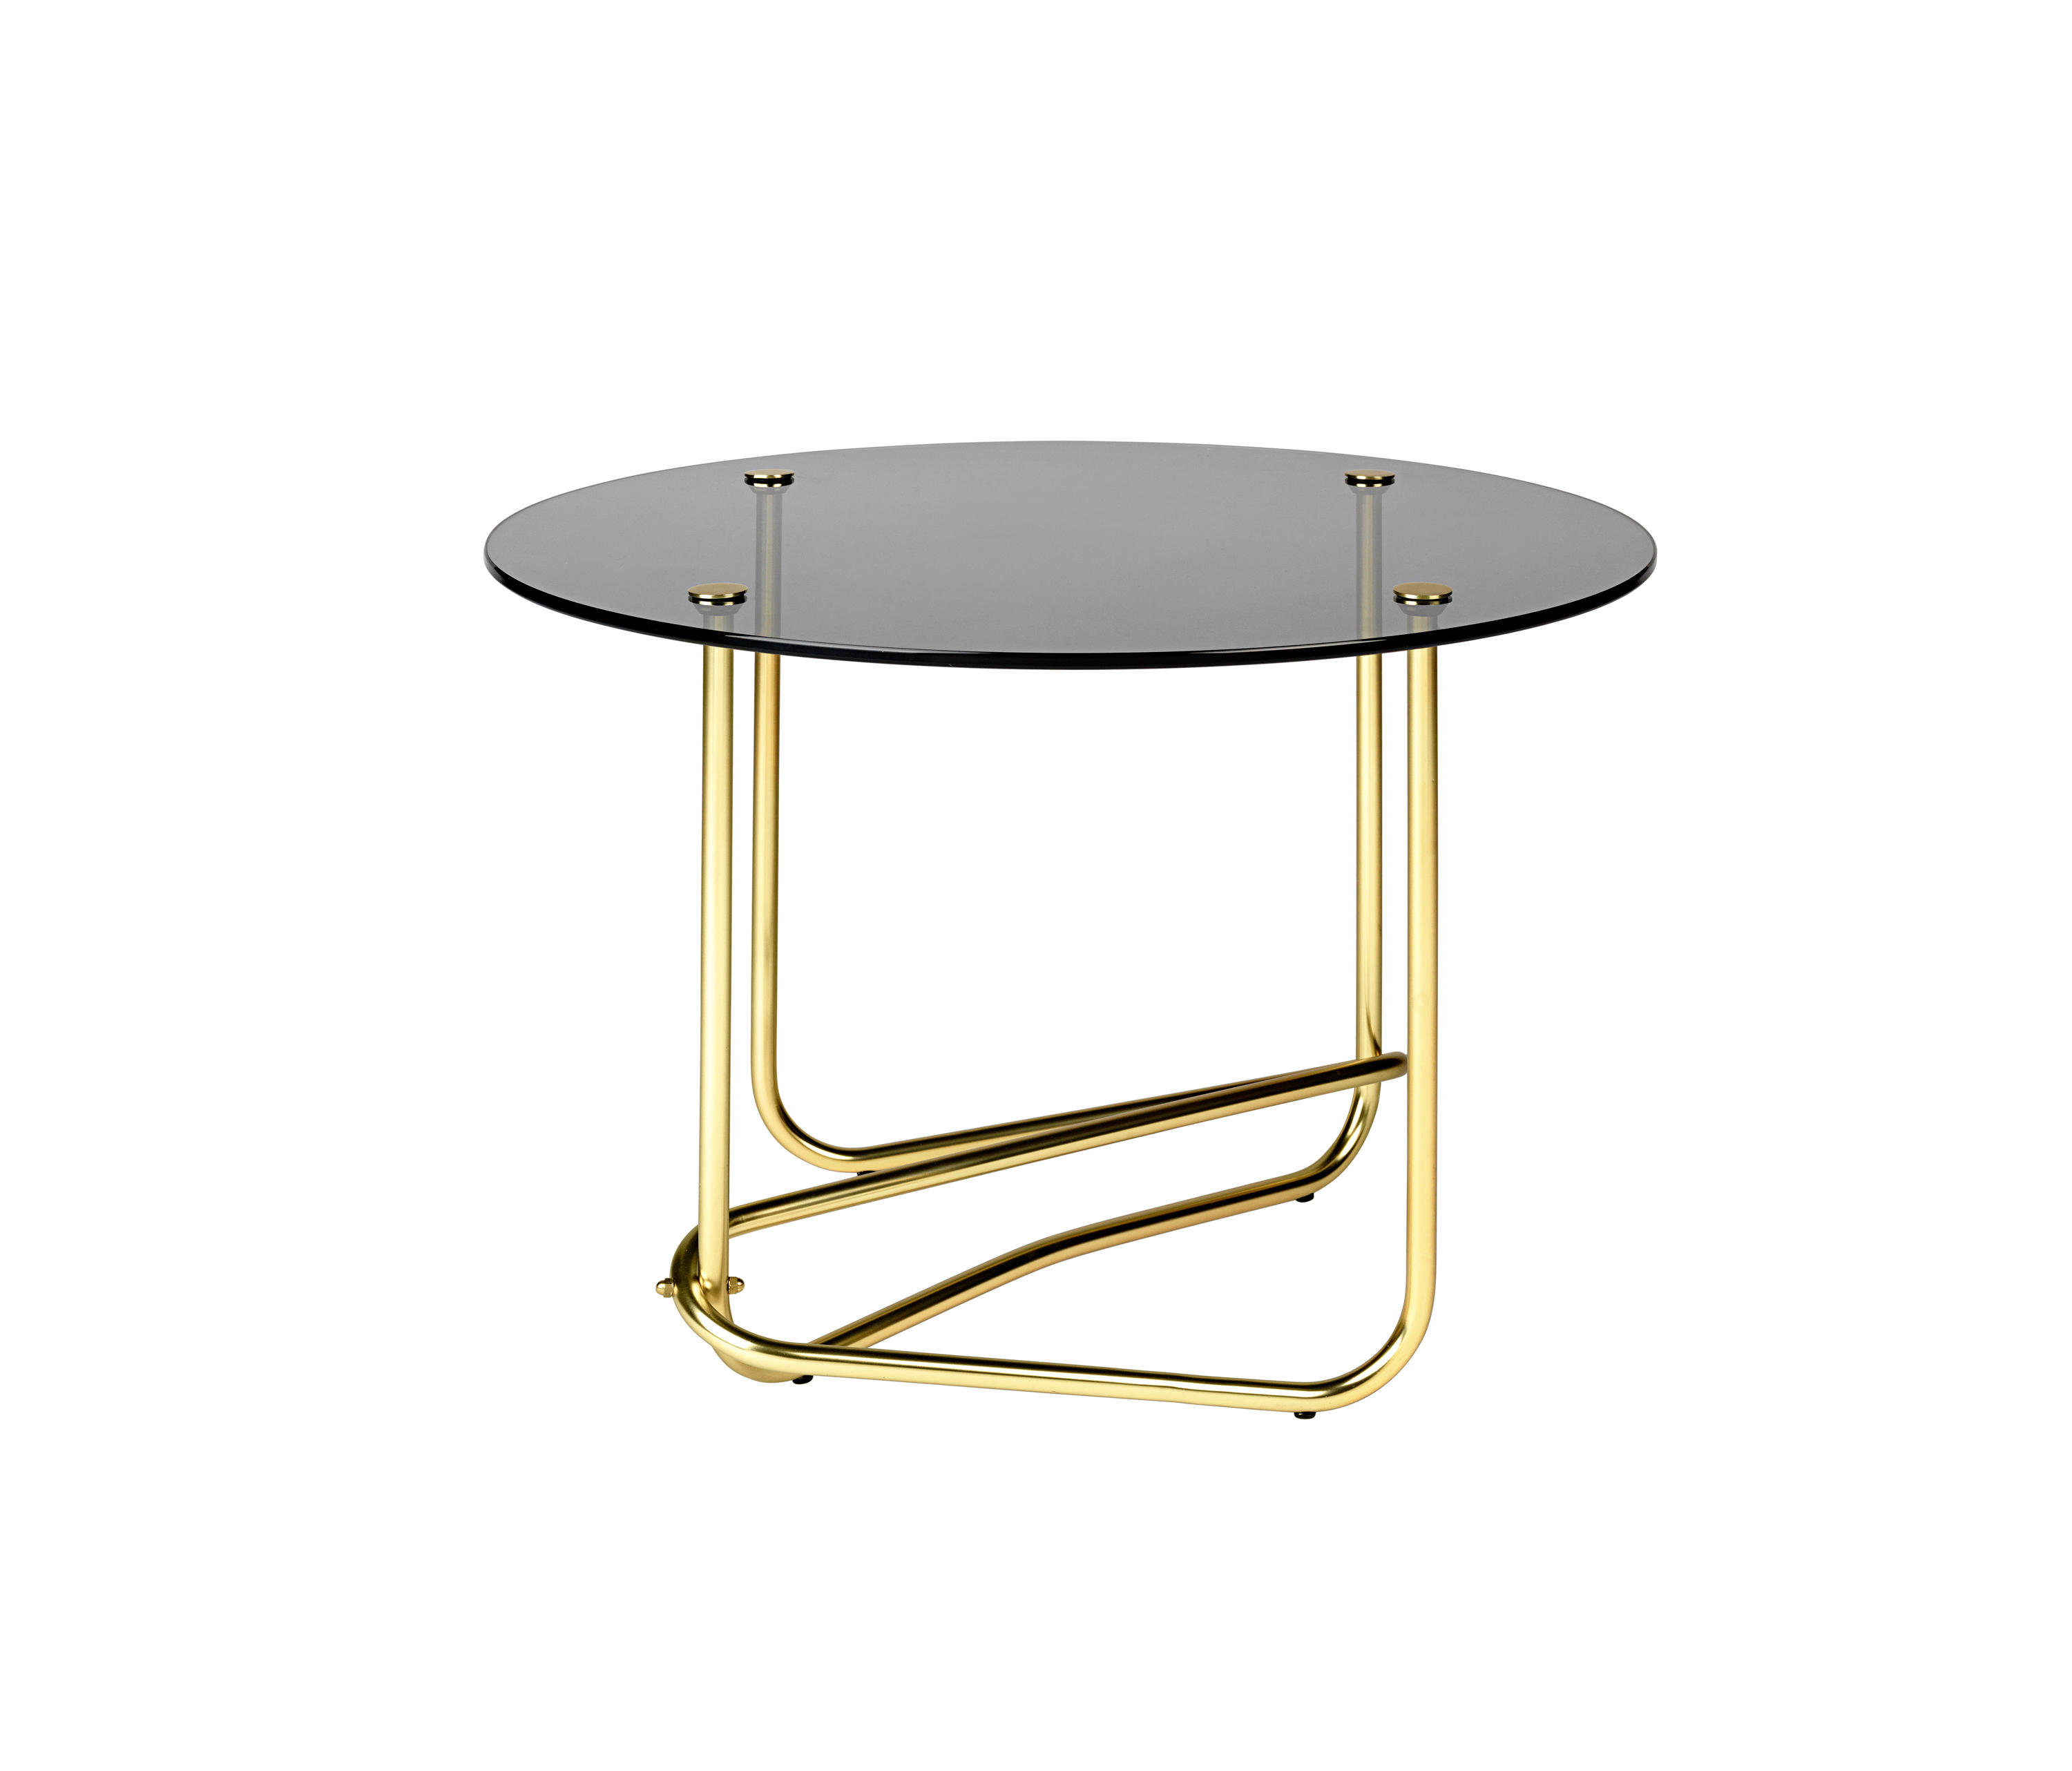 MATéGOT GLASS COFFEE TABLE Side tables from GUBI